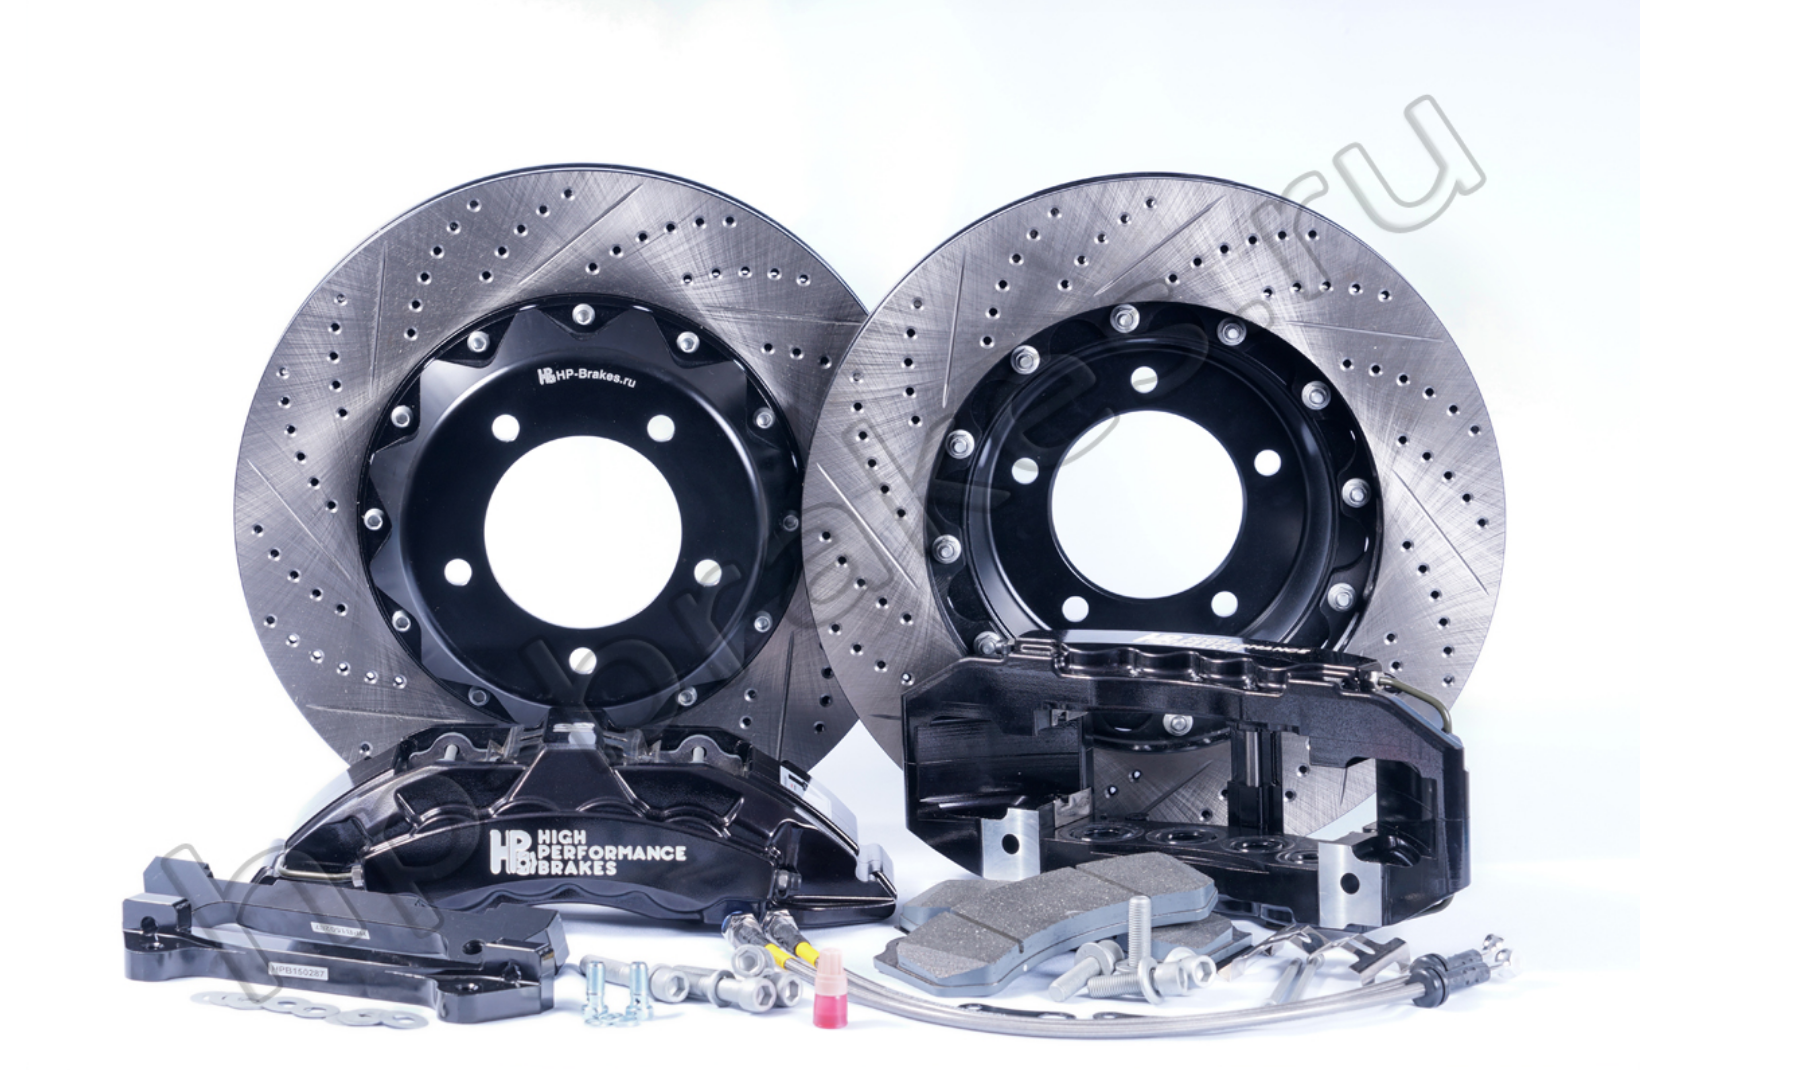 Brake system HP Brakes (Front axle, D22, 8 pistons, disc 430x36mm)